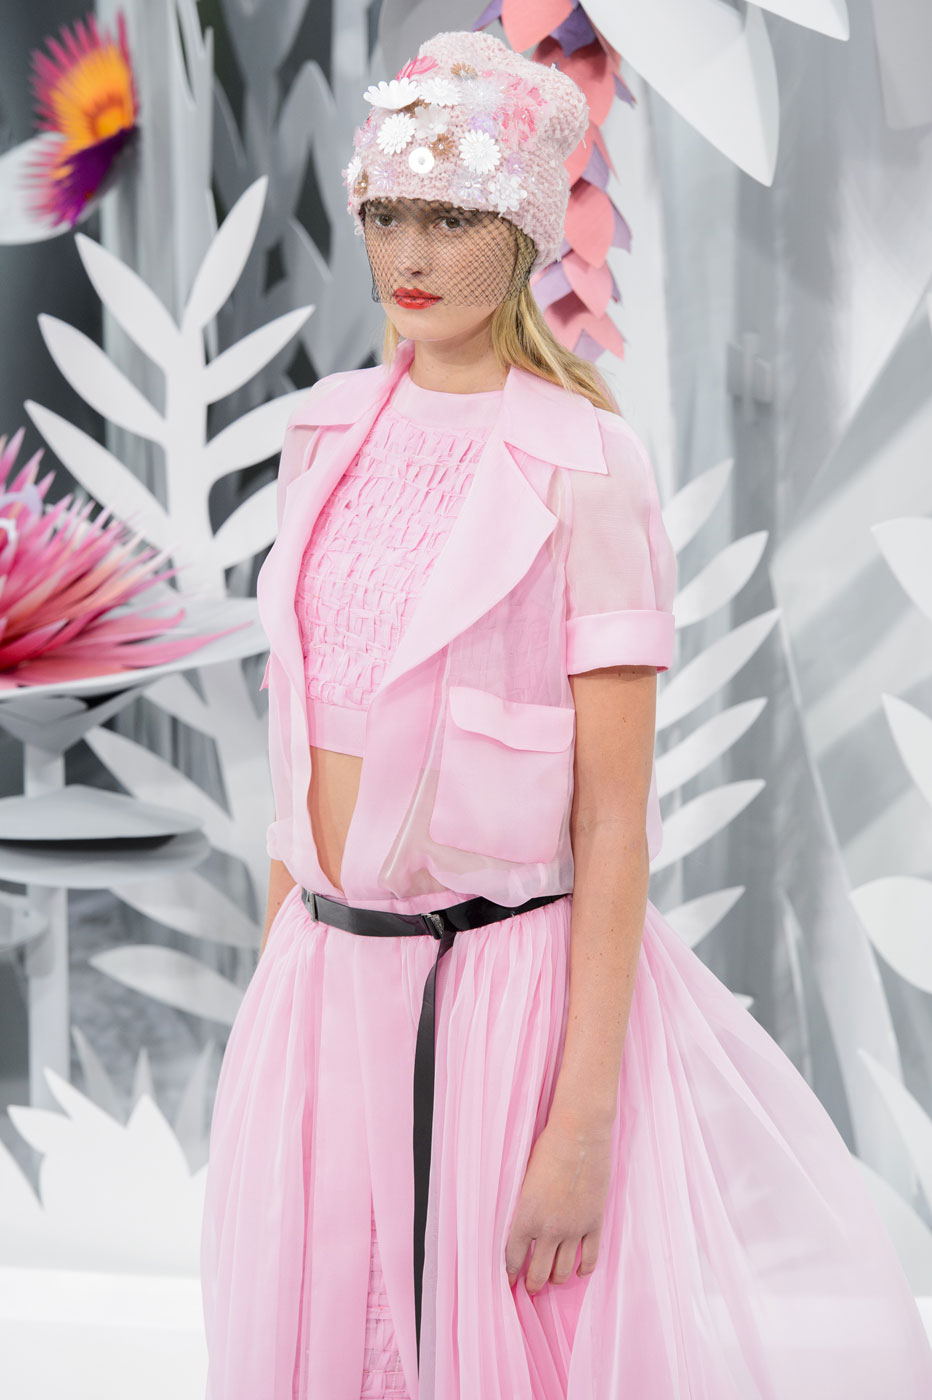 Chanel-fashion-runway-show-haute-couture-paris-spring-summer-2015-the-impression-074